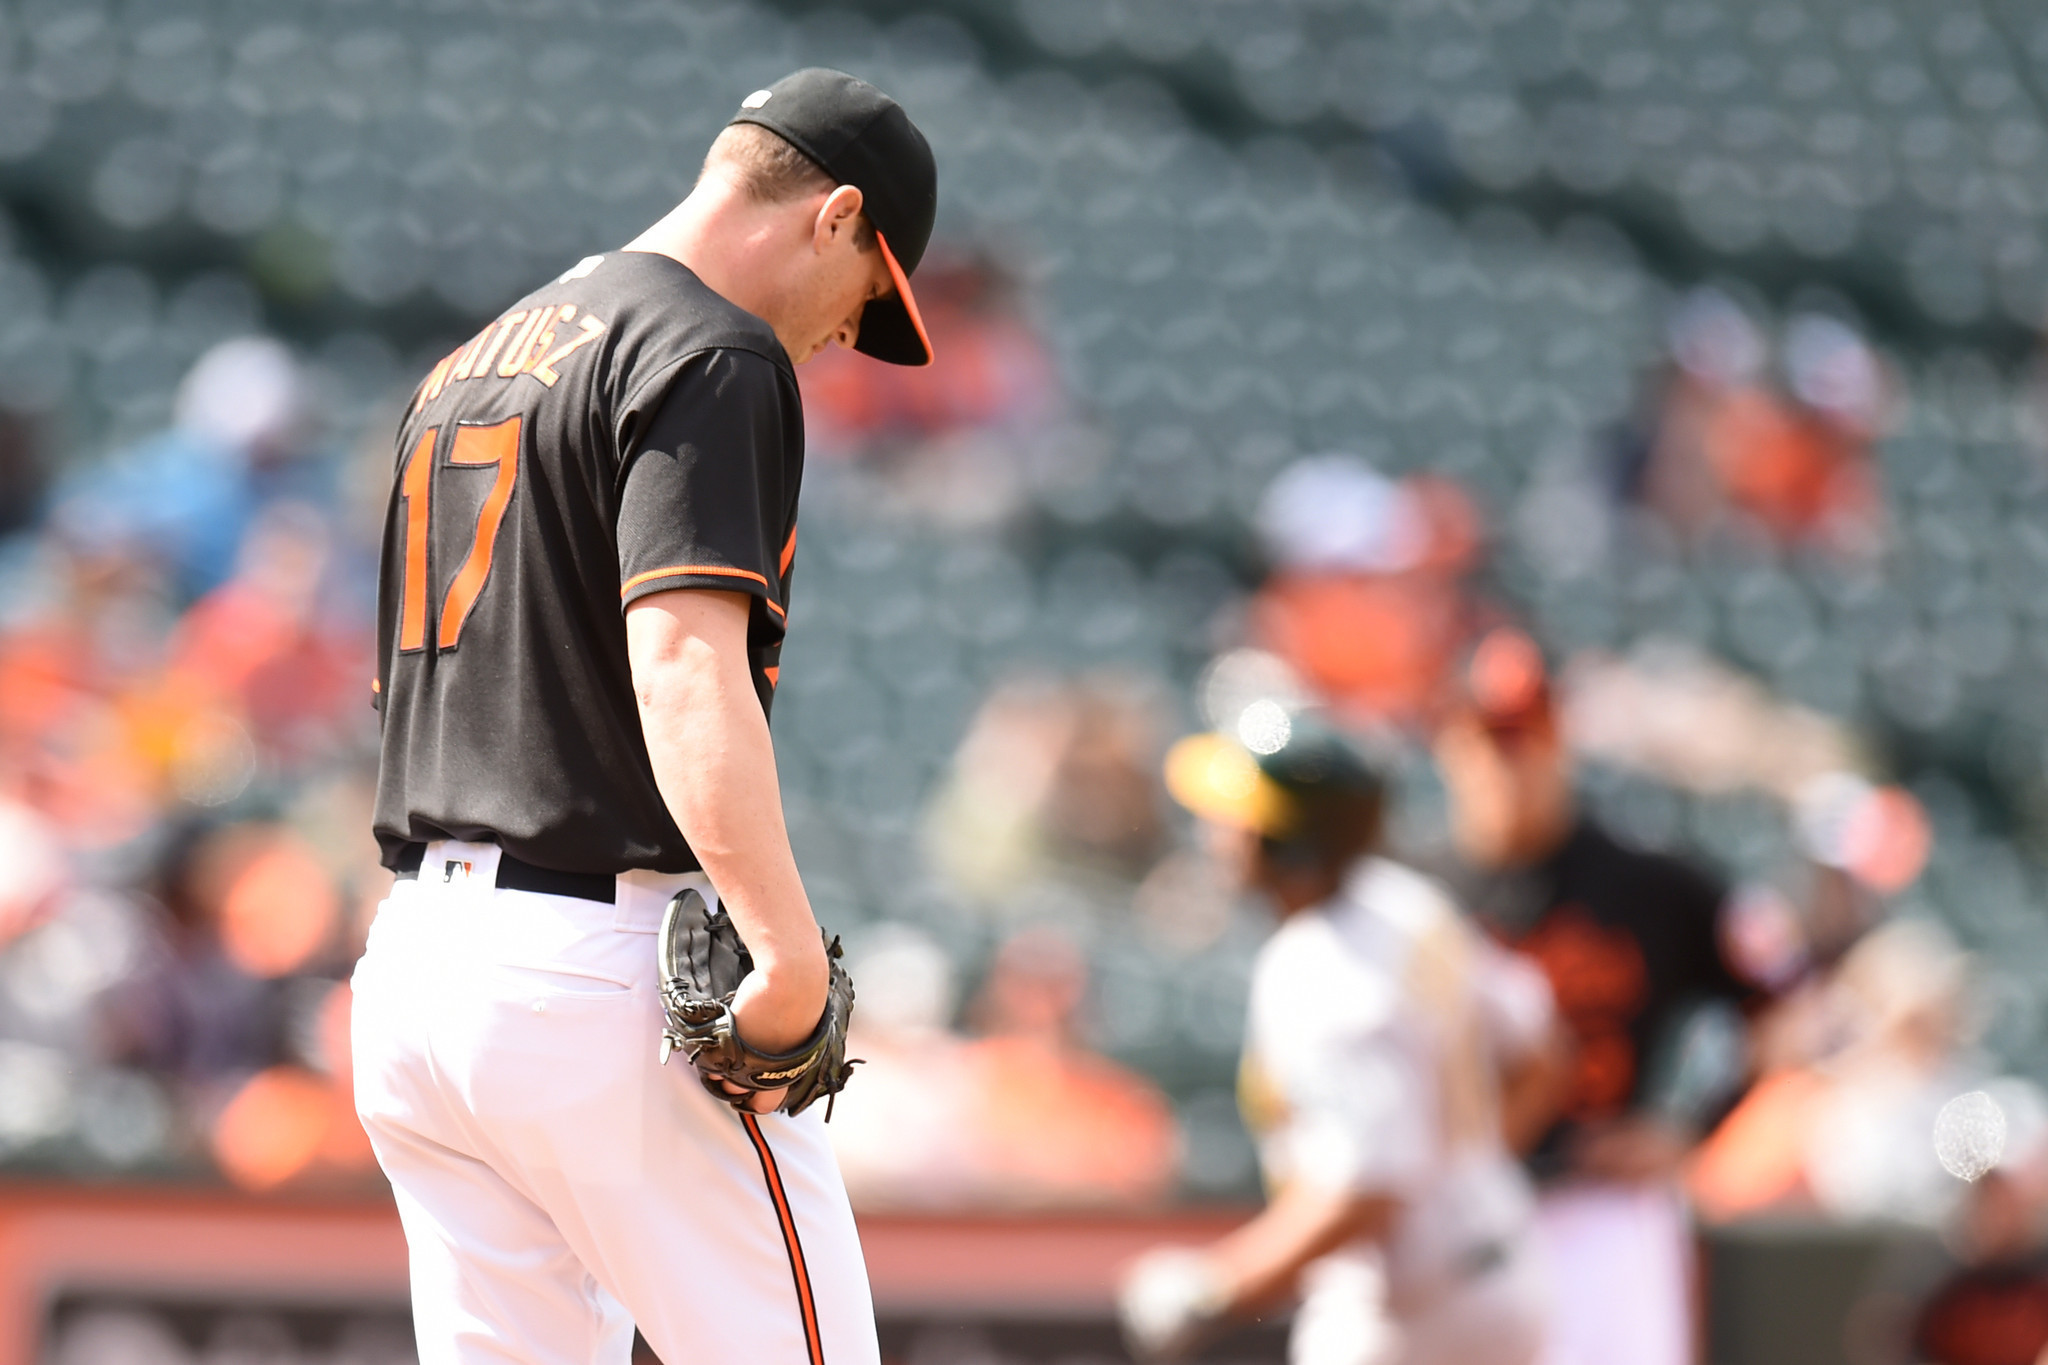 Bal-monday-s-orioles-moves-keep-them-at-forefront-of-trading-draft-picks-amateur-slots-away-20160523